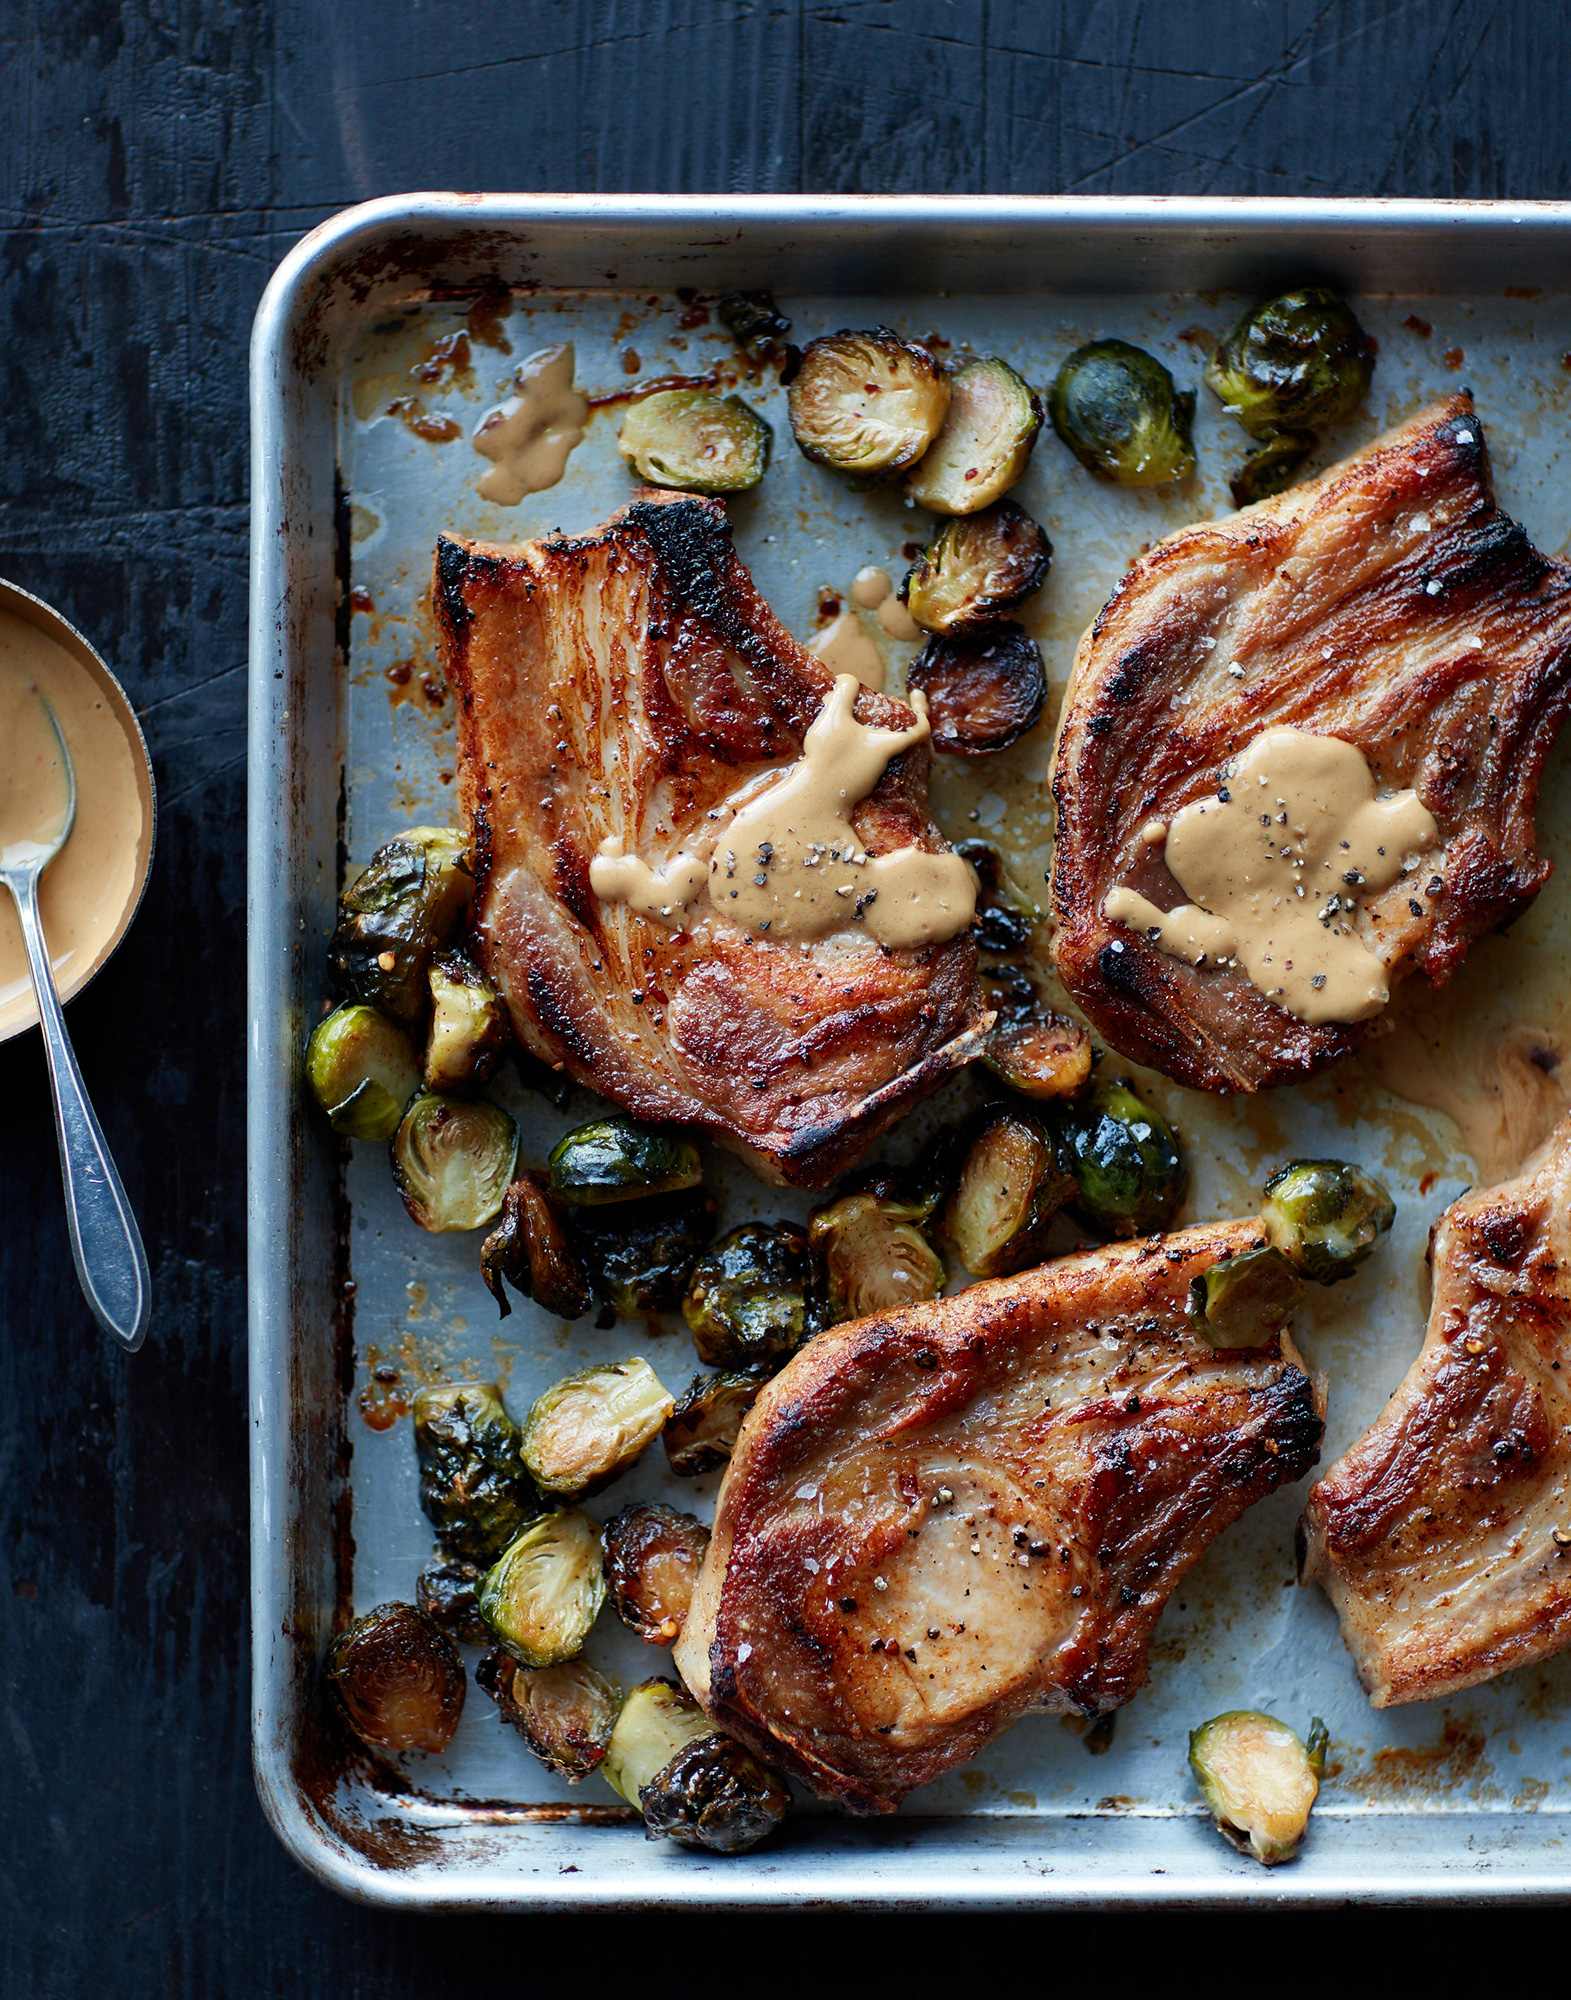 60_Pork_Chops_with_Spicy_Brussels_Sprouts_J_Miller_1483